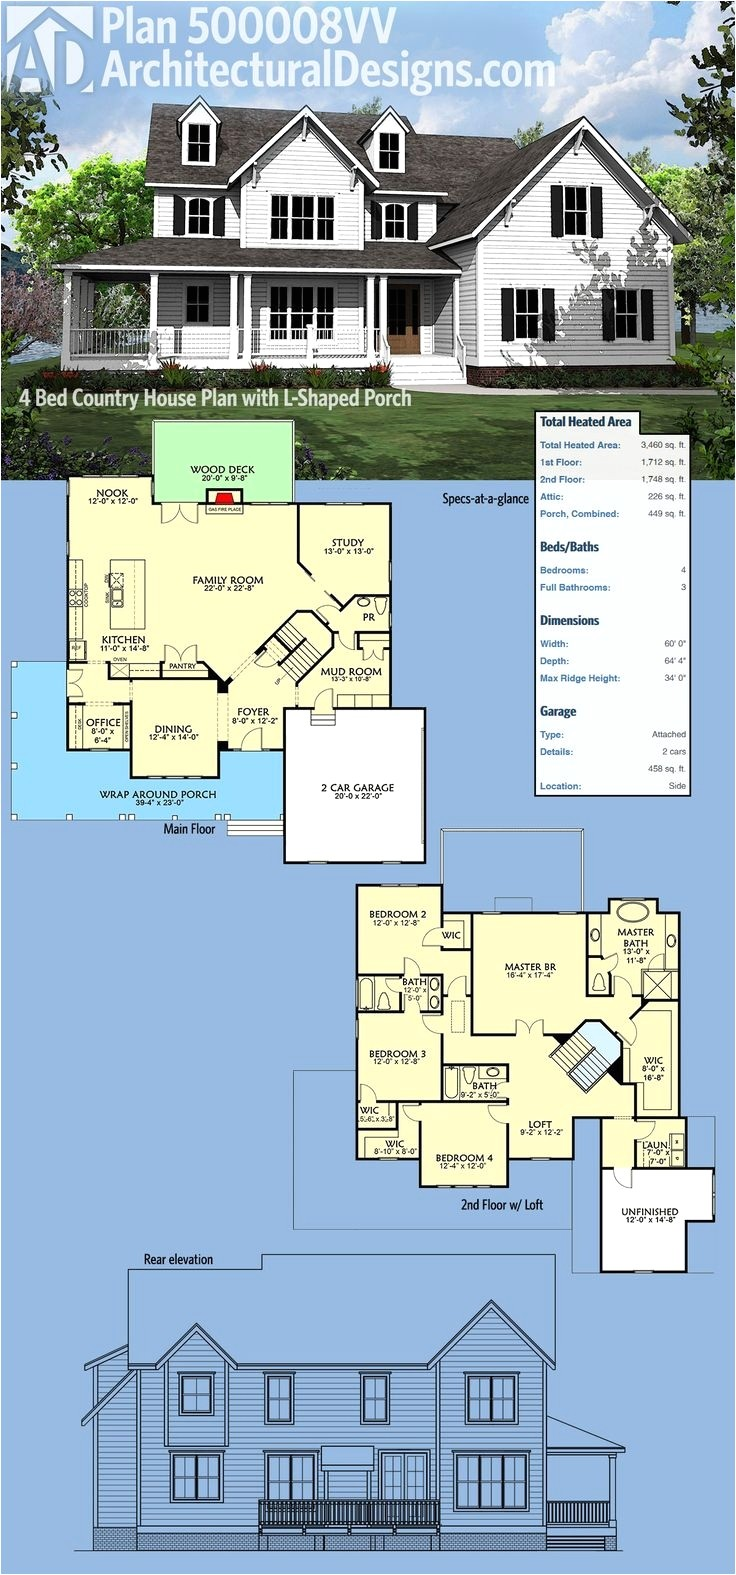 one bedroom retirement house plans